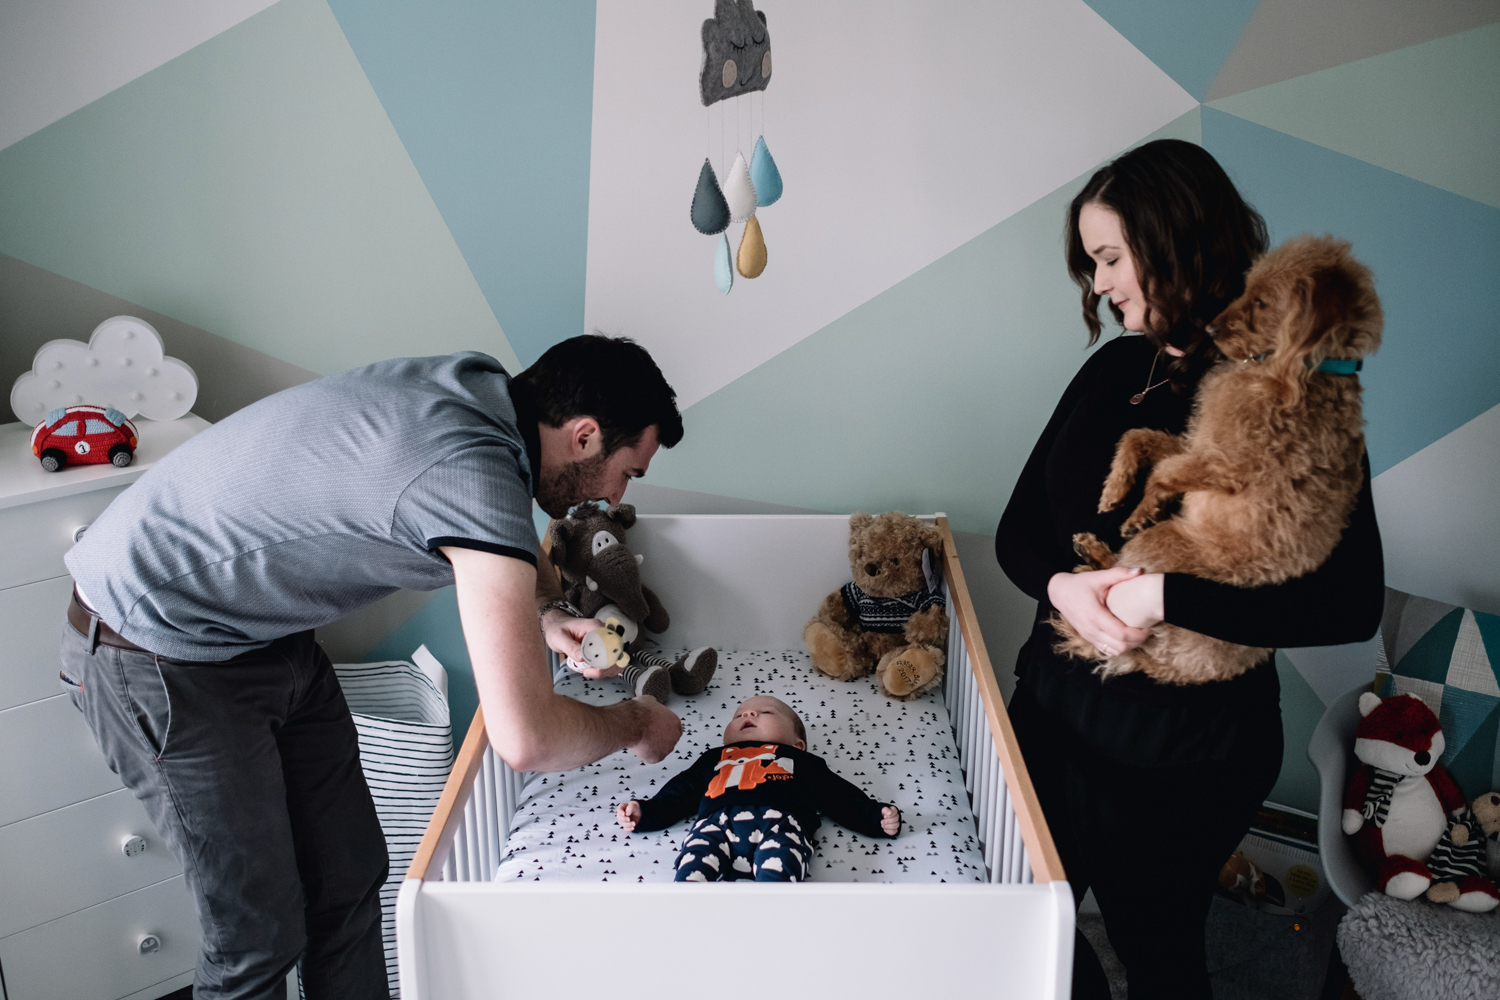 Parents looking at their son who is lying in his cot.